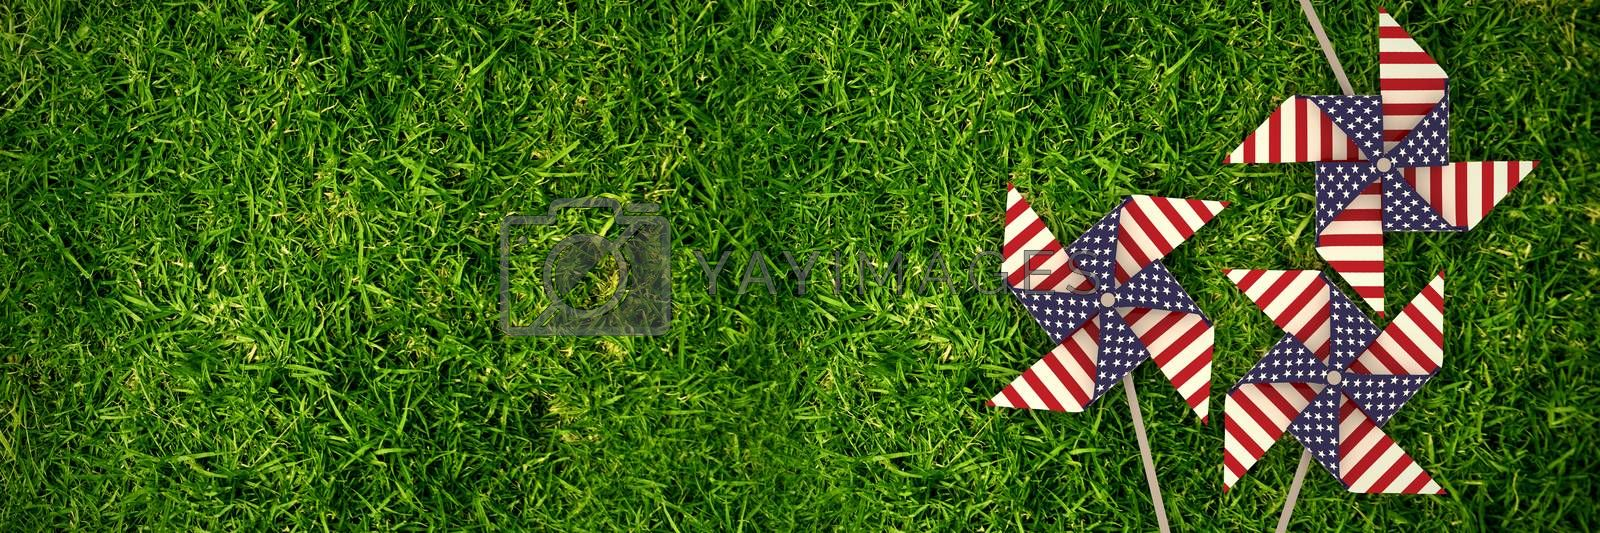 Composite image of 3d image of pinwheel toy with american flag pattern by Wavebreakmedia